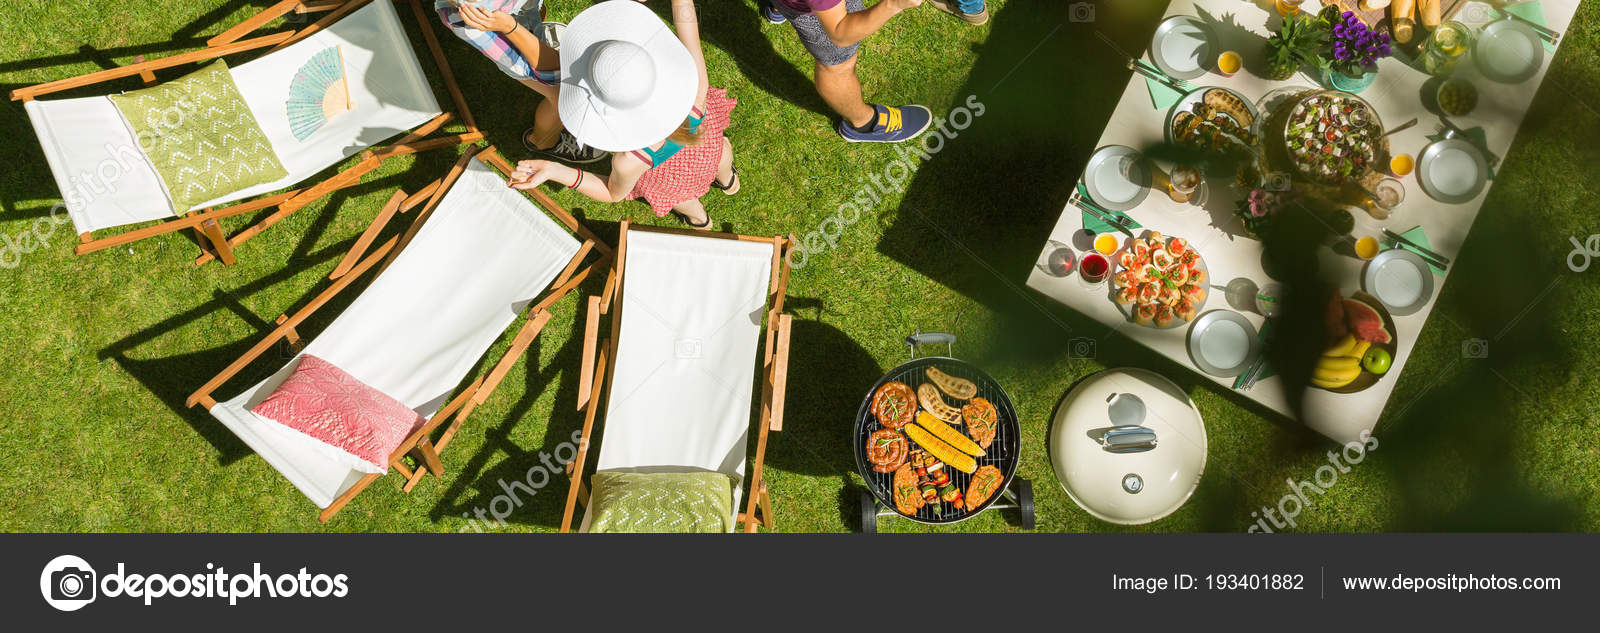 Awesome Garden Table Lawn Chairs Prepared Barbeque Party Stock Interior Design Ideas Pimpapslepicentreinfo